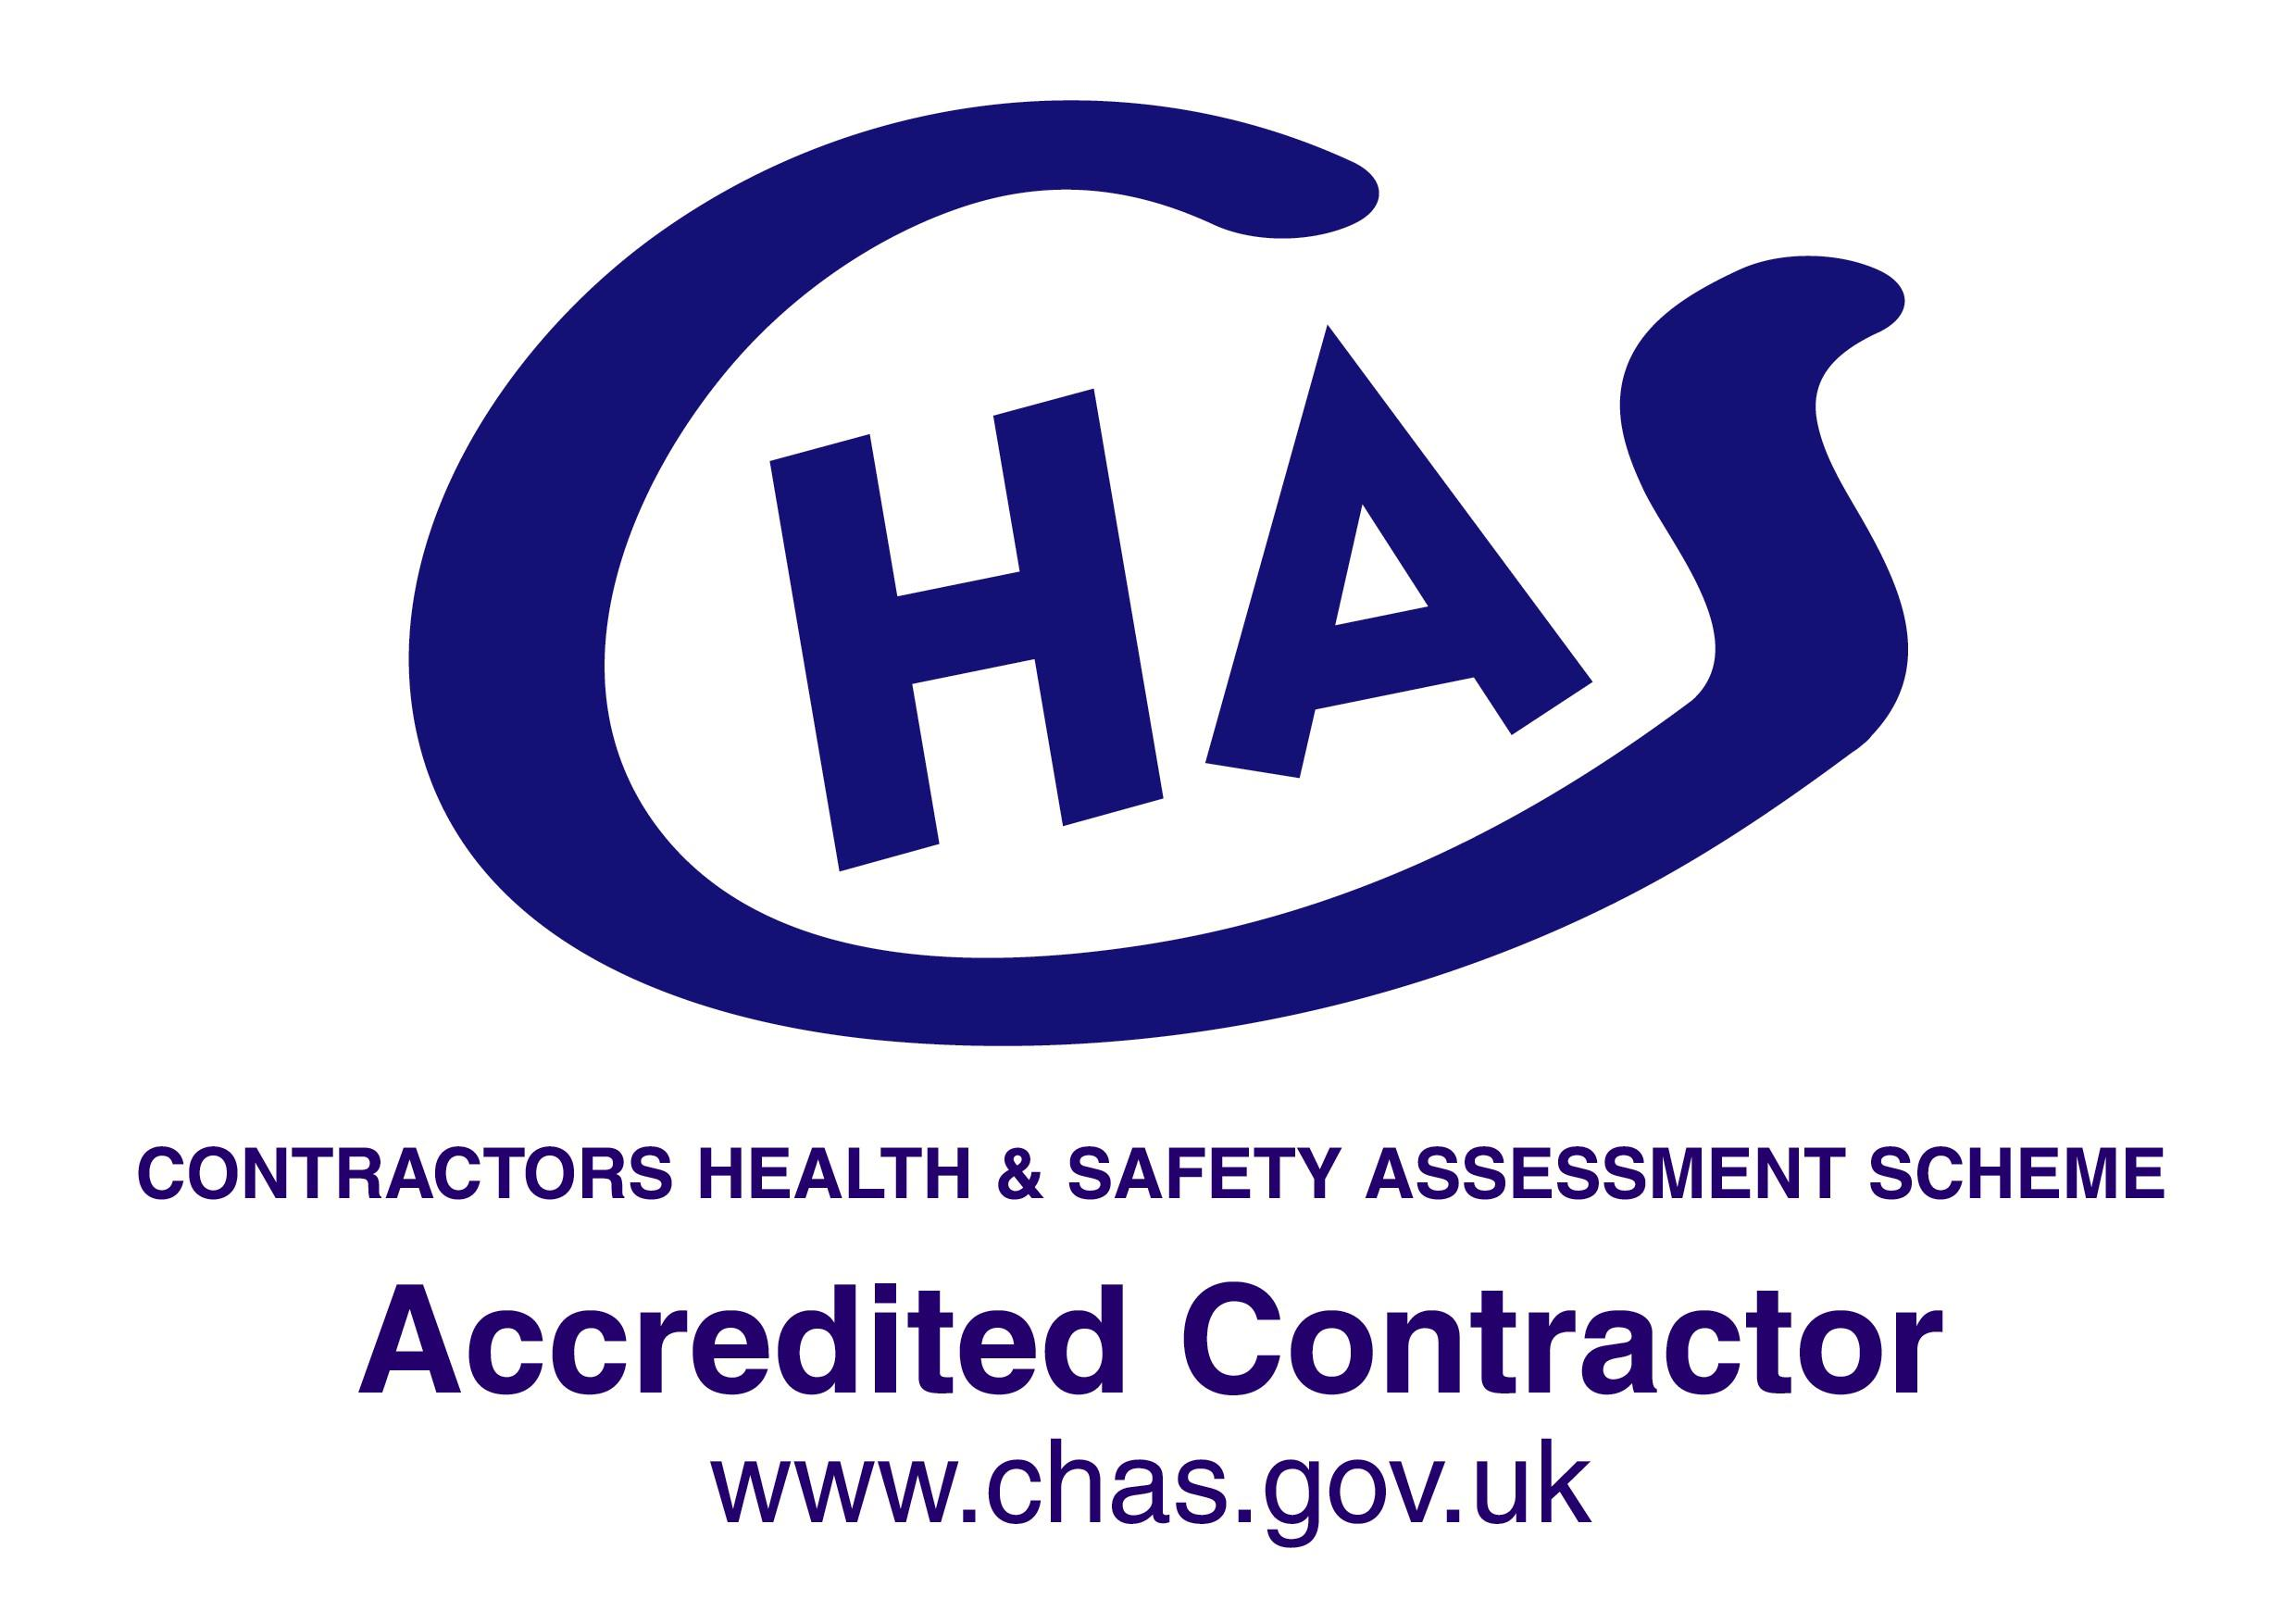 CHAS Certified Contractor